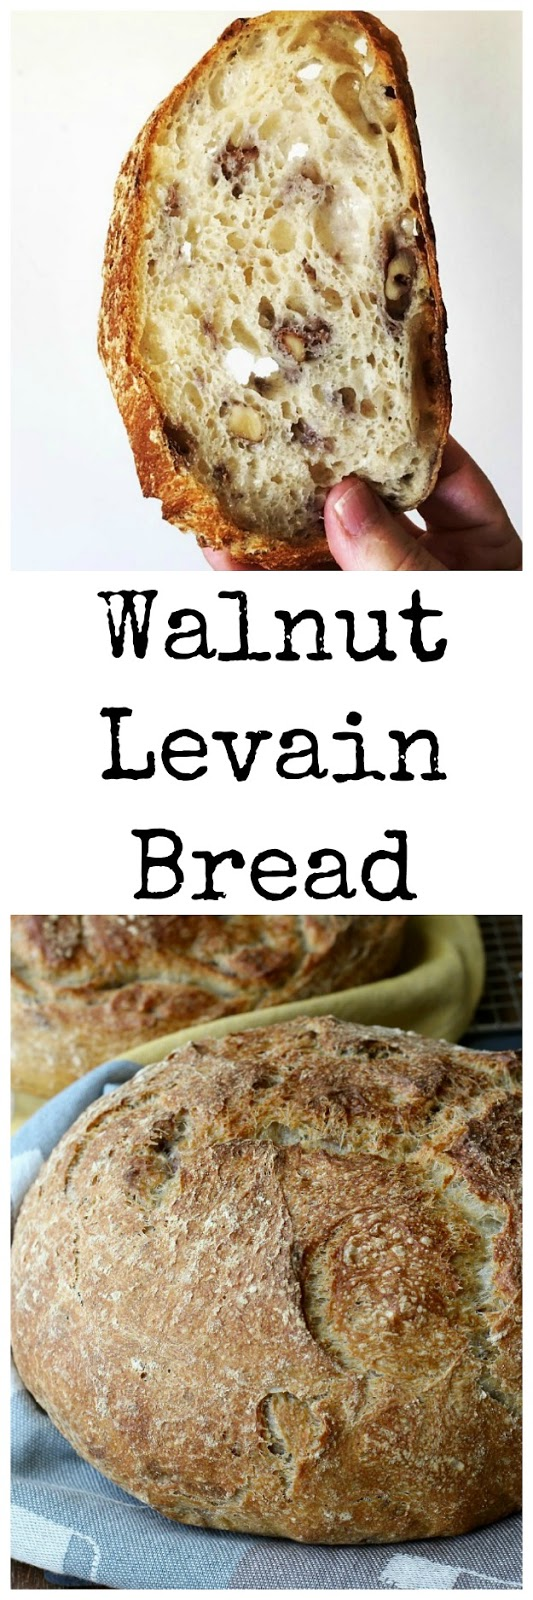 This Walnut Levain Bread is such a pleasure to make, and even more fun to eat. The crust is chewy, and the crumb is soft and airy, and loaded with toasted walnuts.